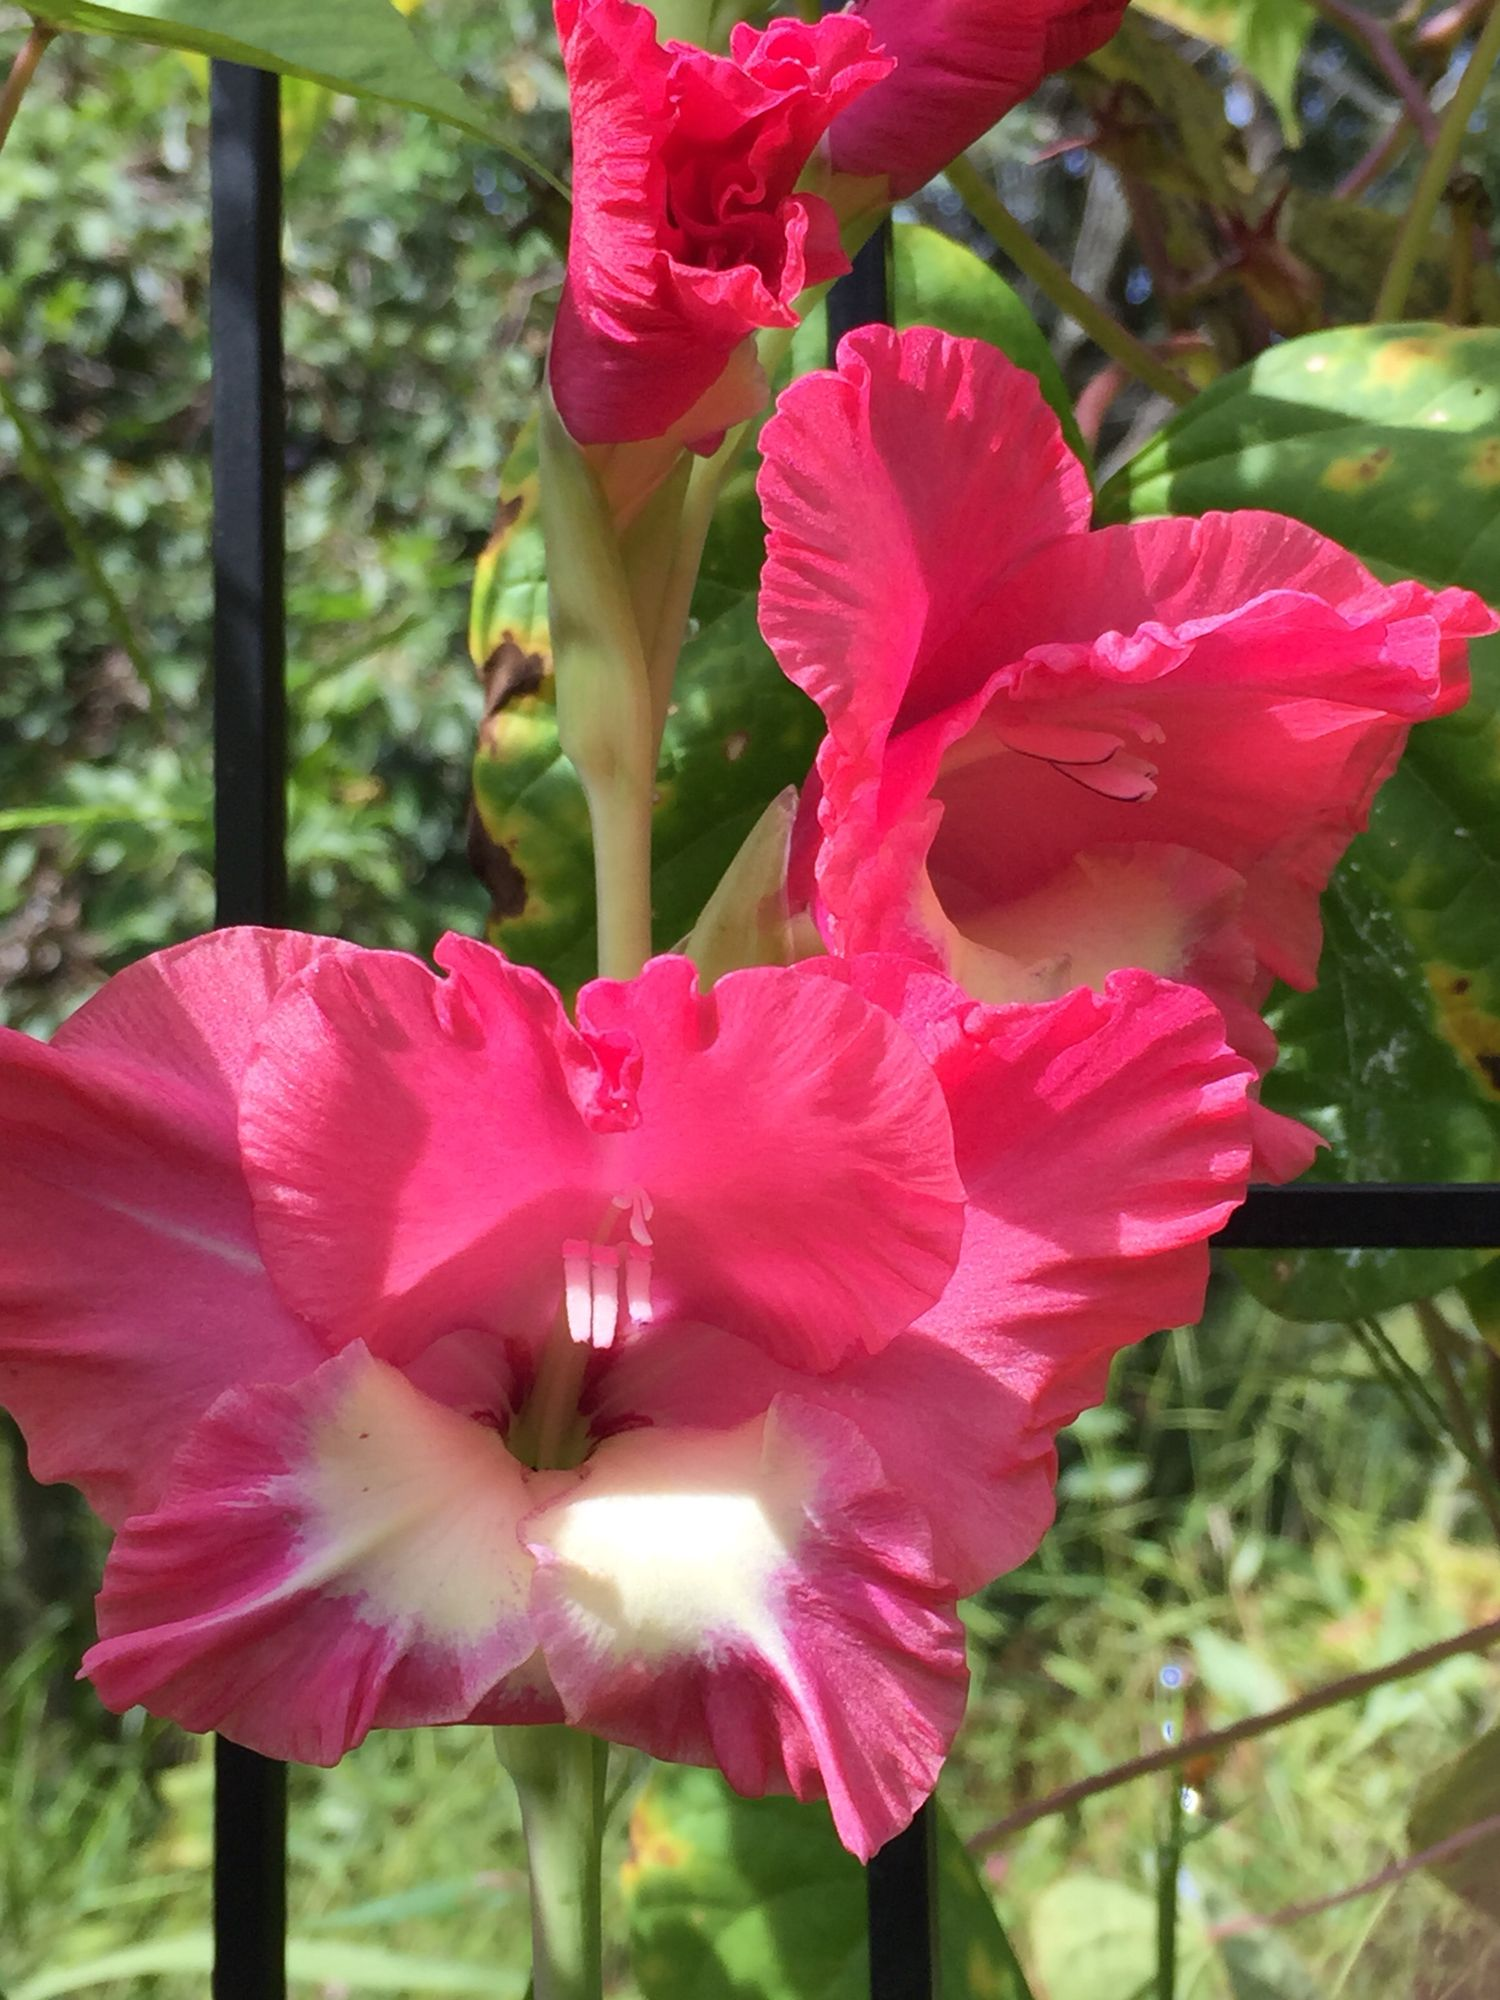 Gladiola \'Chit Chat\'-yes, the color is that intense. My favorite ...